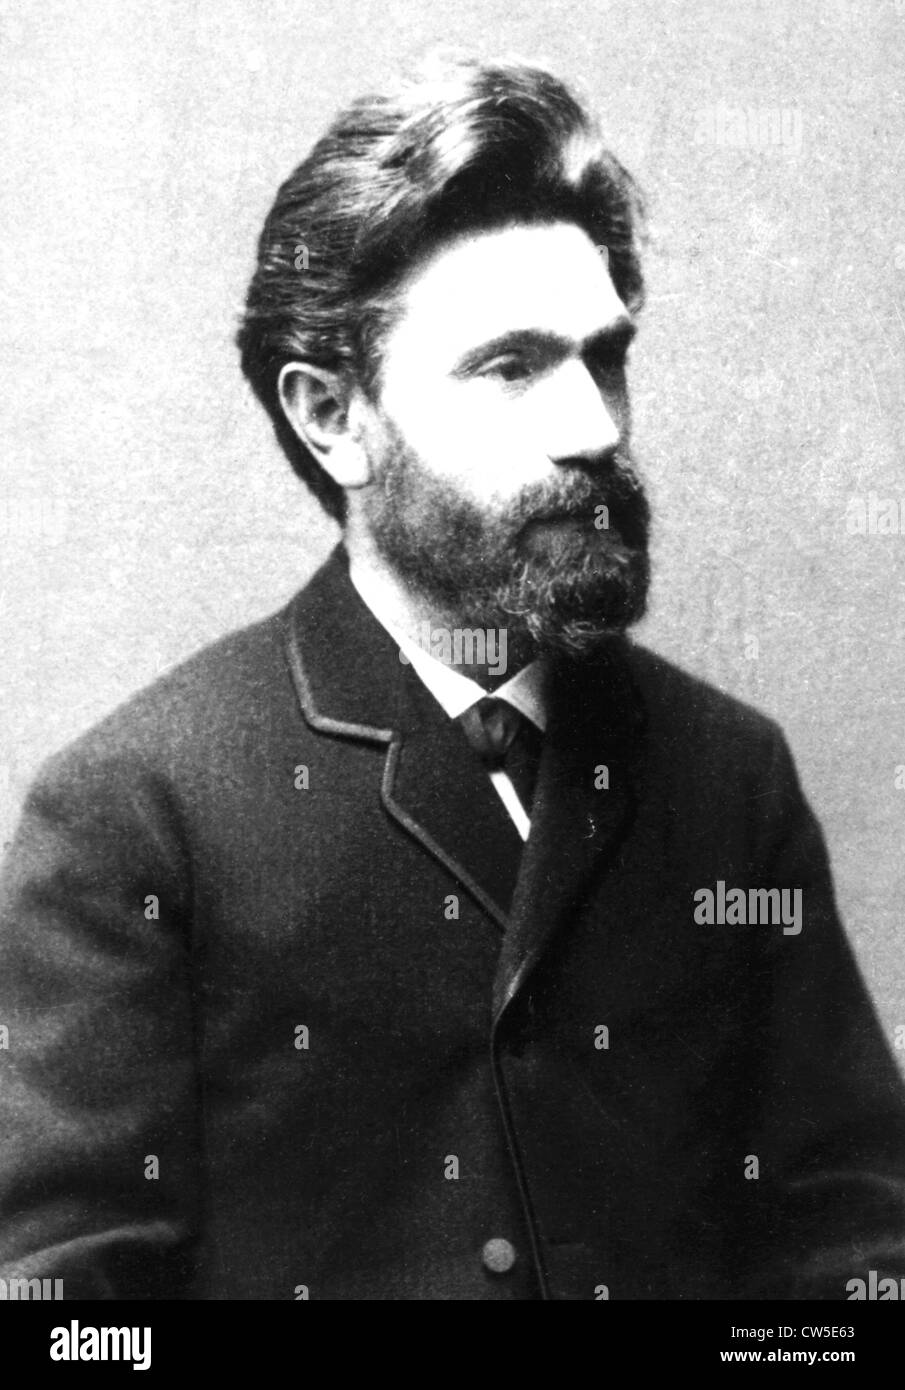 Auguste Bebel (1840-1913), German politician. One of the founders of the Social Democratic Party - Stock Image